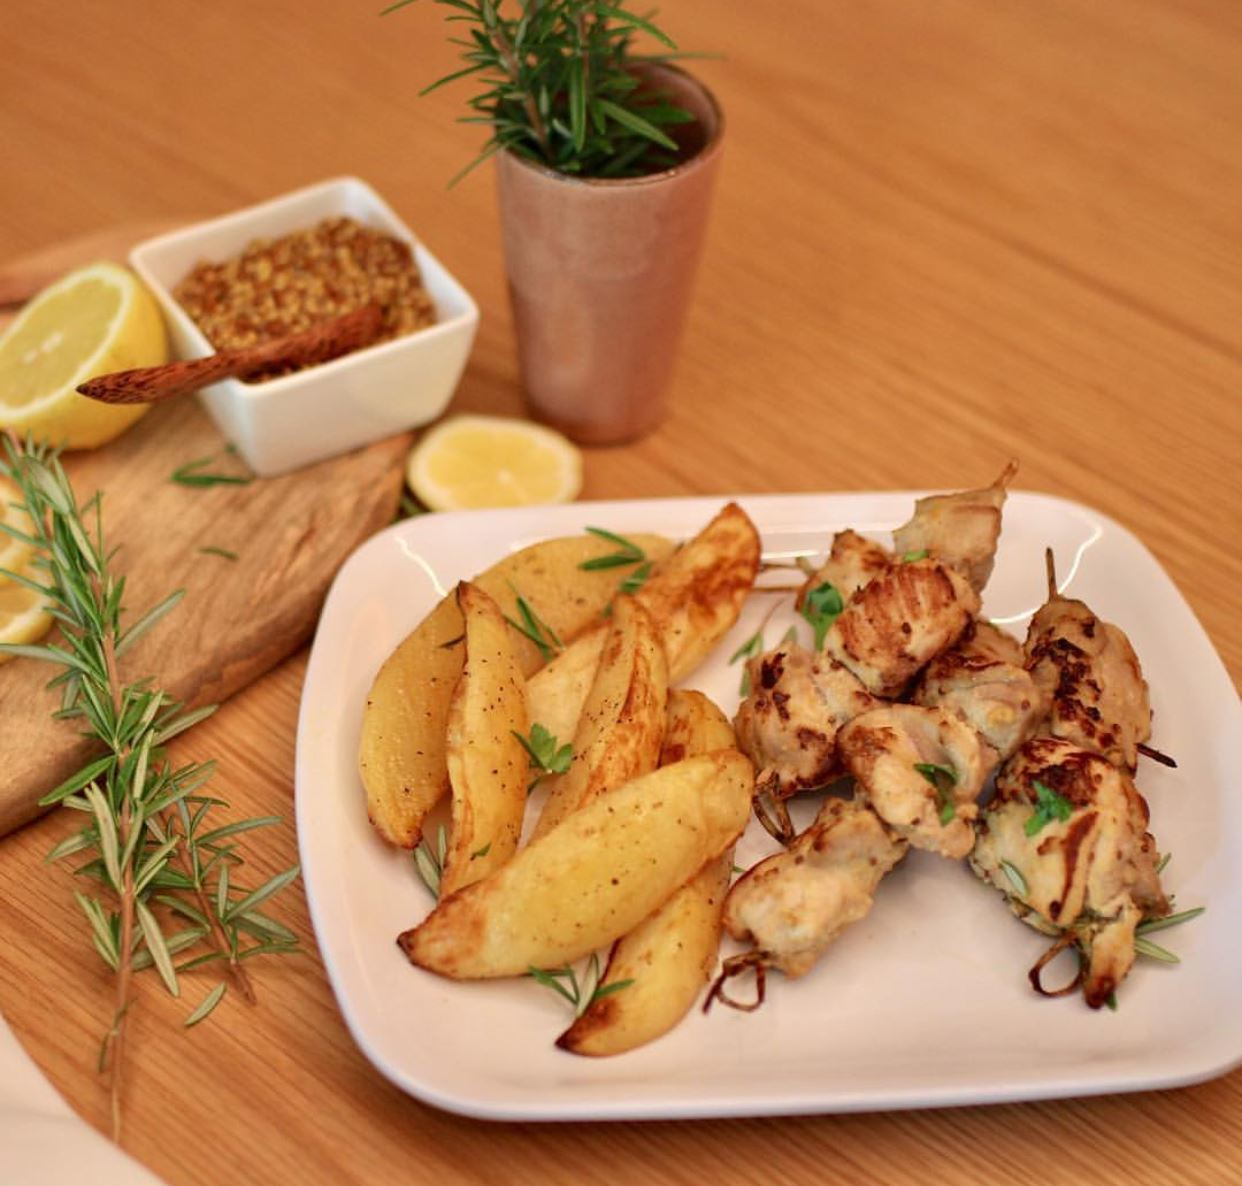 Lemon & Rosemary Chicken Skewers with Roasted potatoes